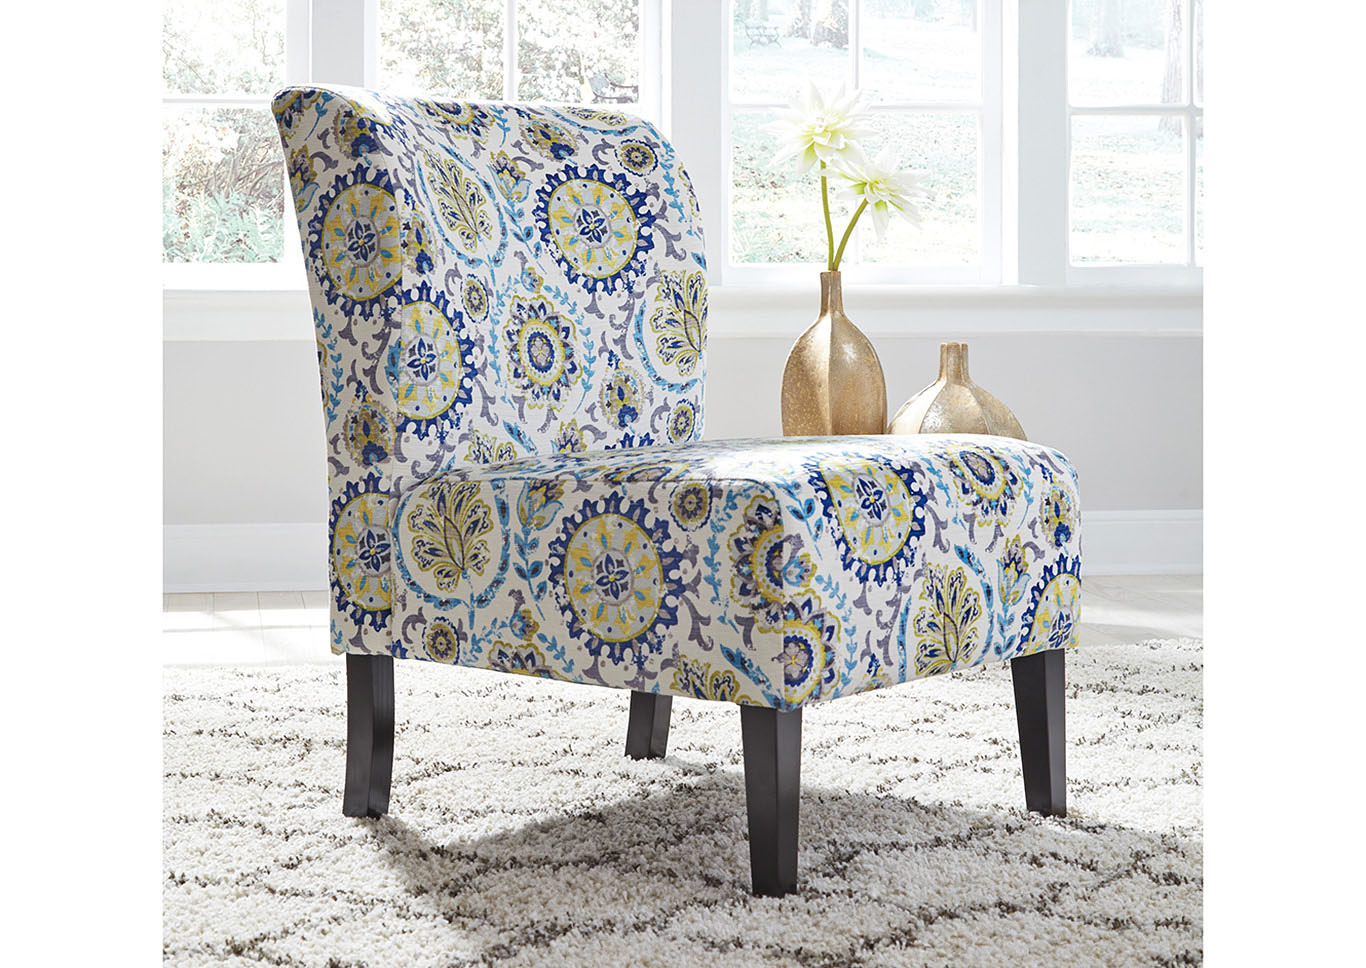 Triptis Blue Patterned Accent Chair,Signature Design By Ashley